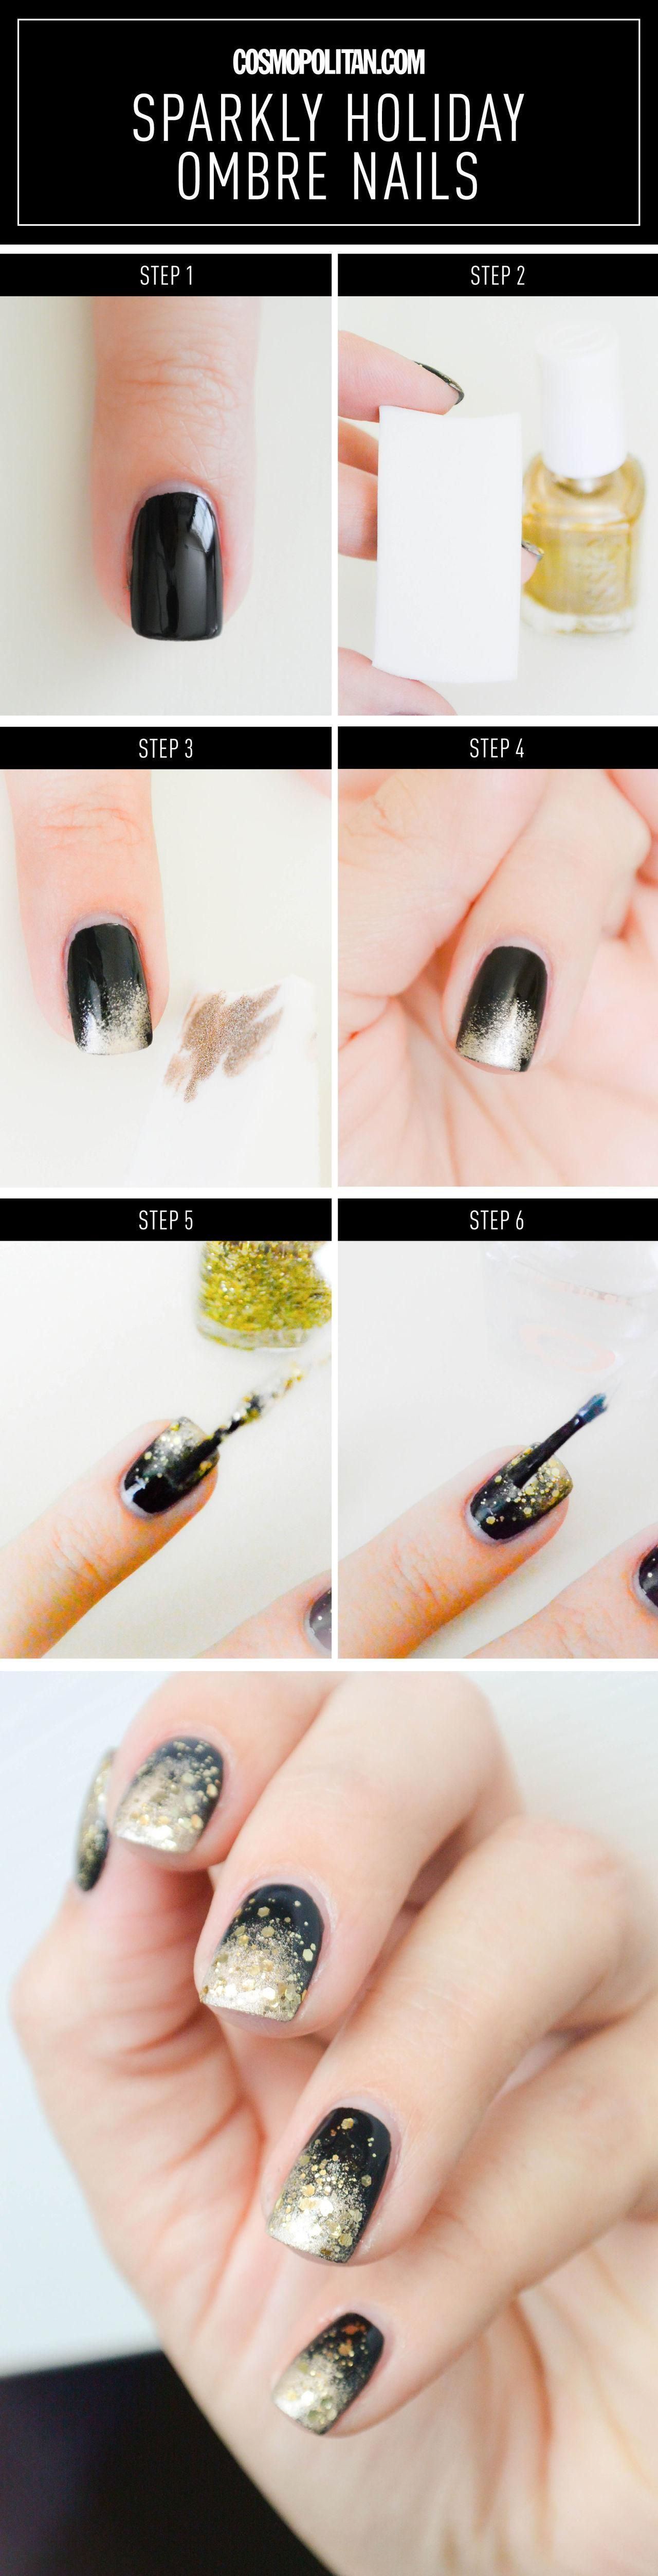 Nail Art How-To: Sparkly Black and Gold Ombré Mani - Nail Art How-To: Sparkly B... #art #black #Gold #howto #mani #Nail #ombre #sparkly